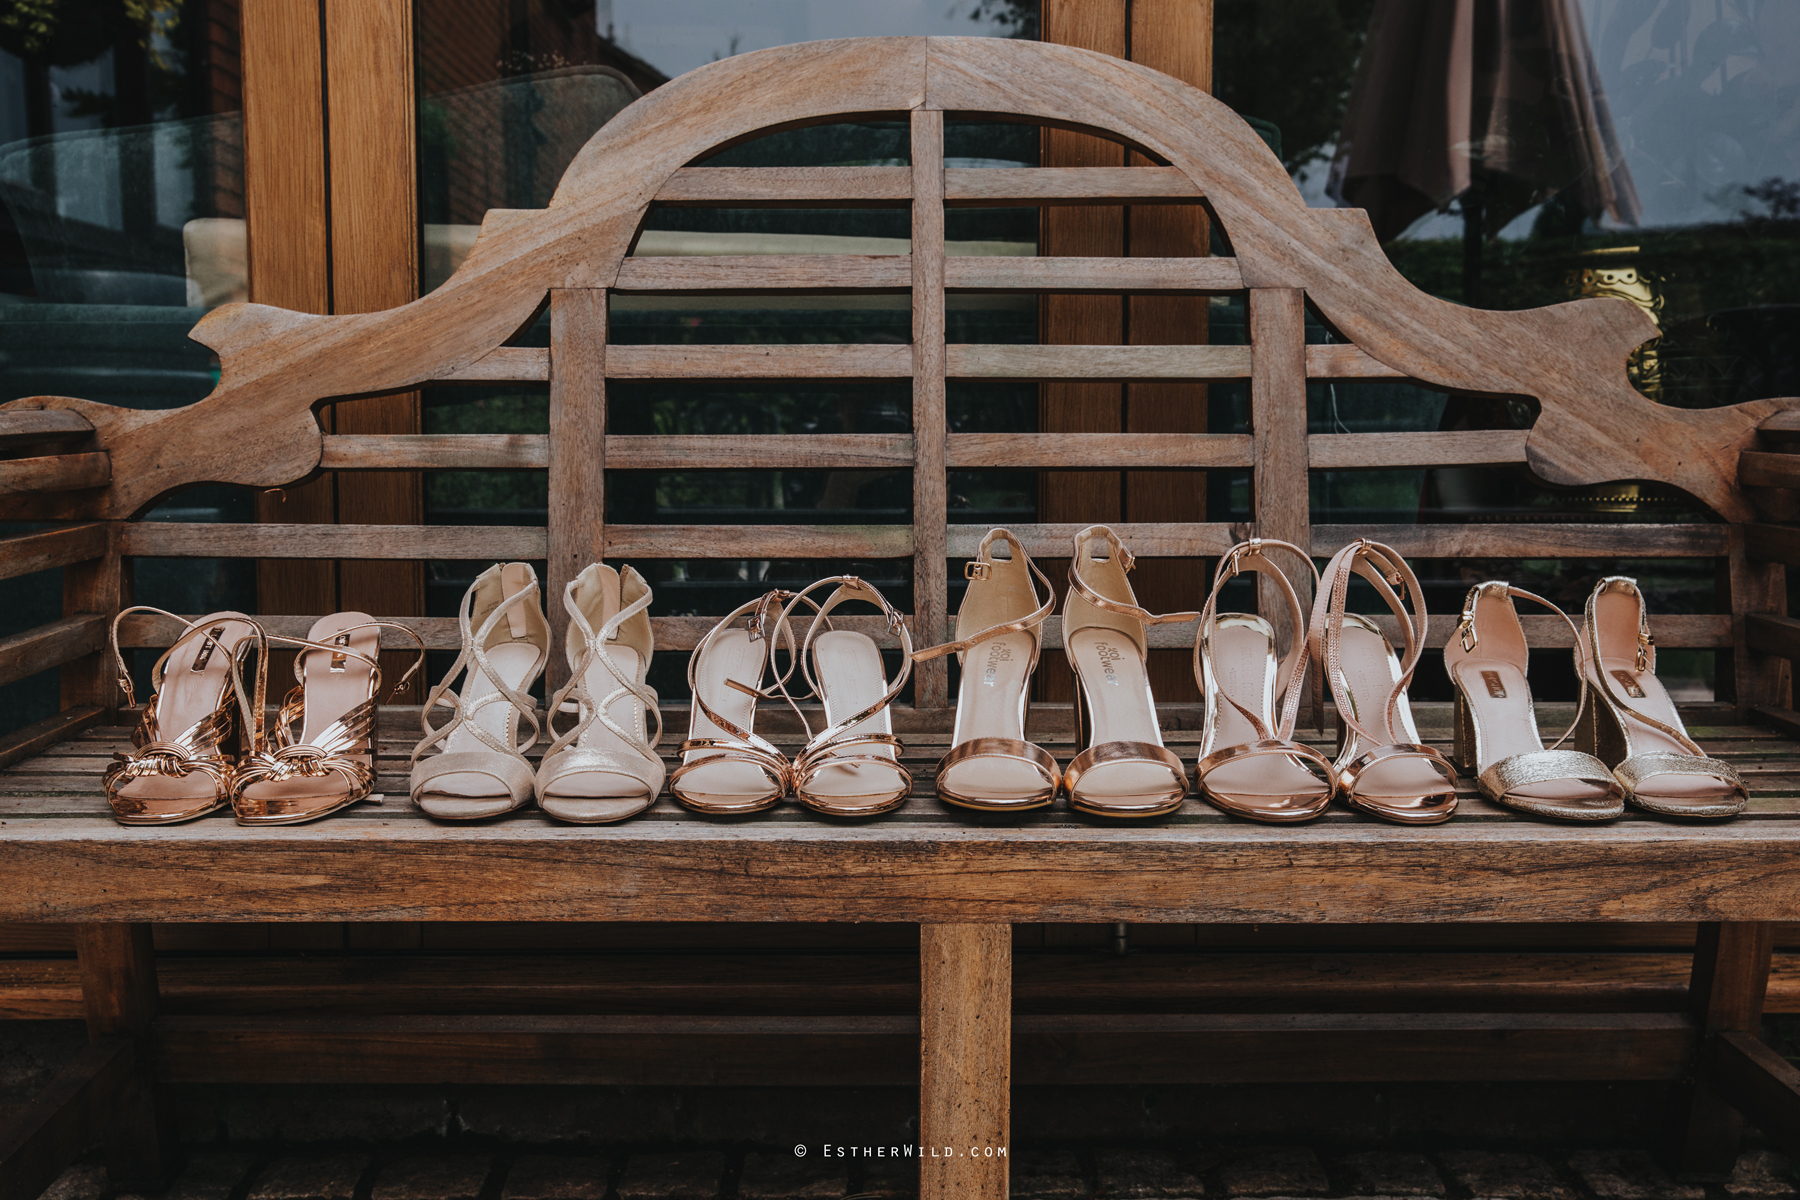 Wootton_Wedding_Copyright_Esther_Wild_Photographer_IMG_0130.jpg